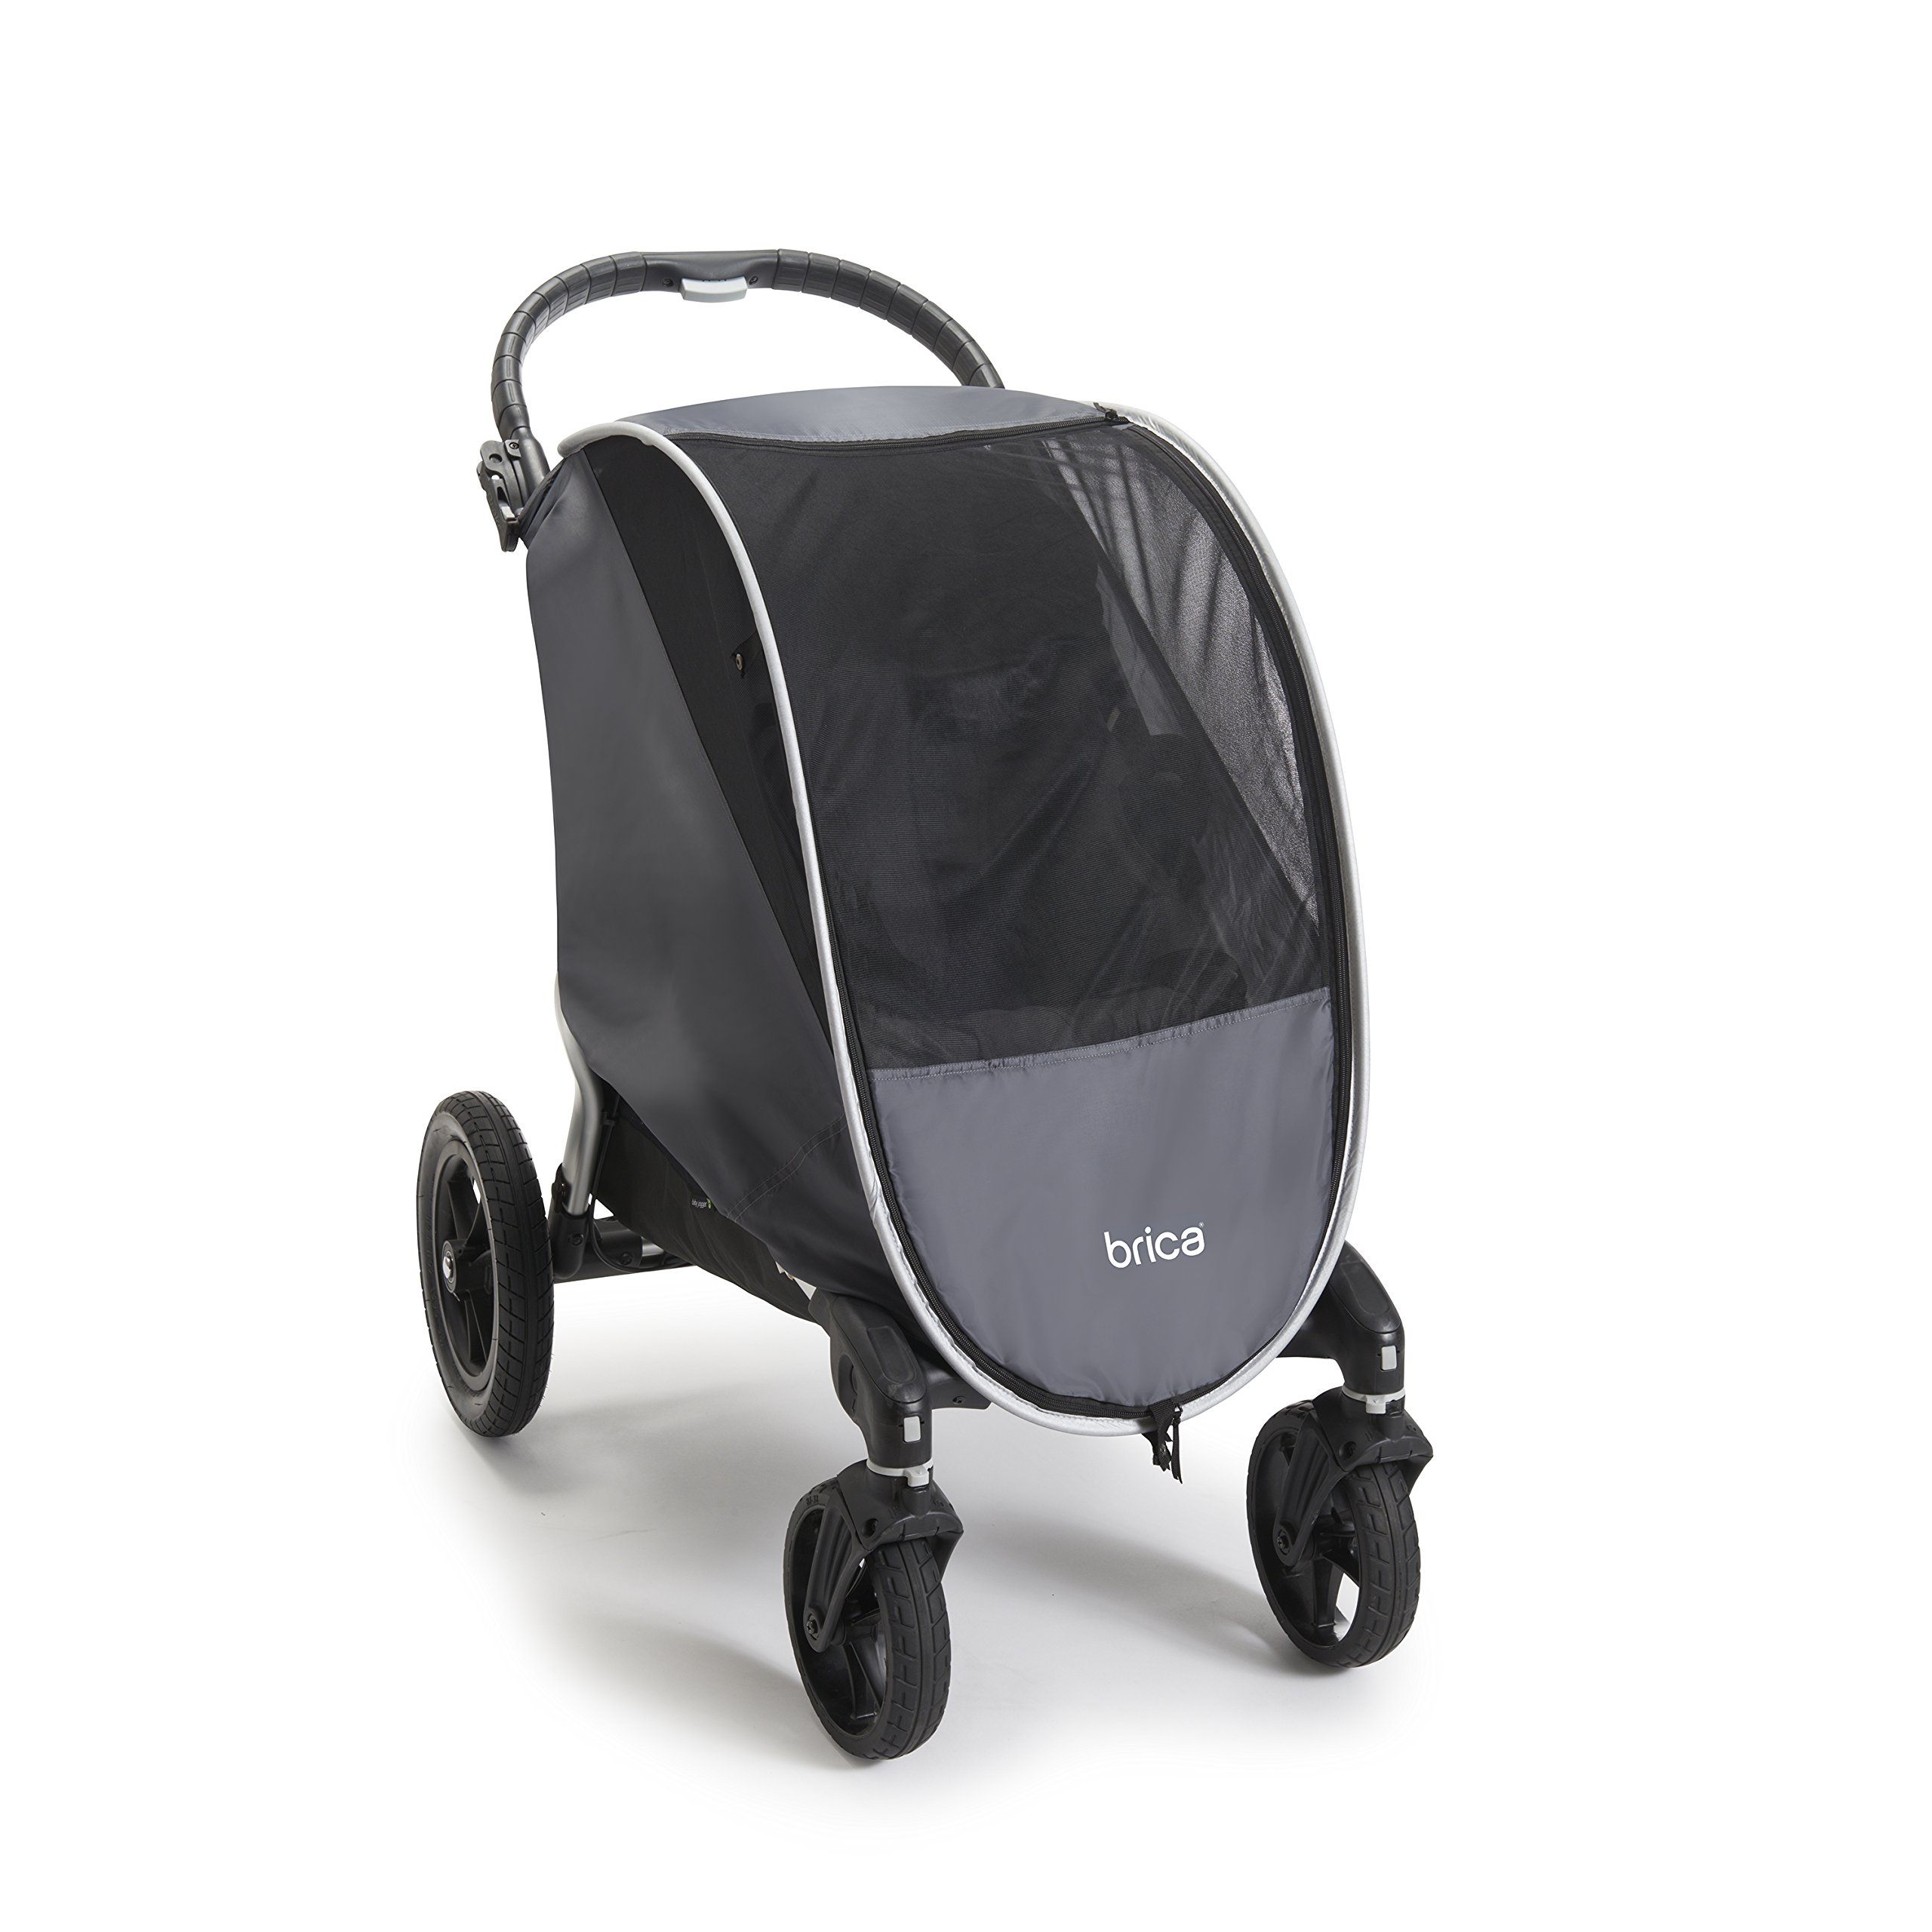 Munchkin Brica Shield Stroller Cover, Helps Block UVA/UVB Rays, Grey by Munchkin (Image #2)